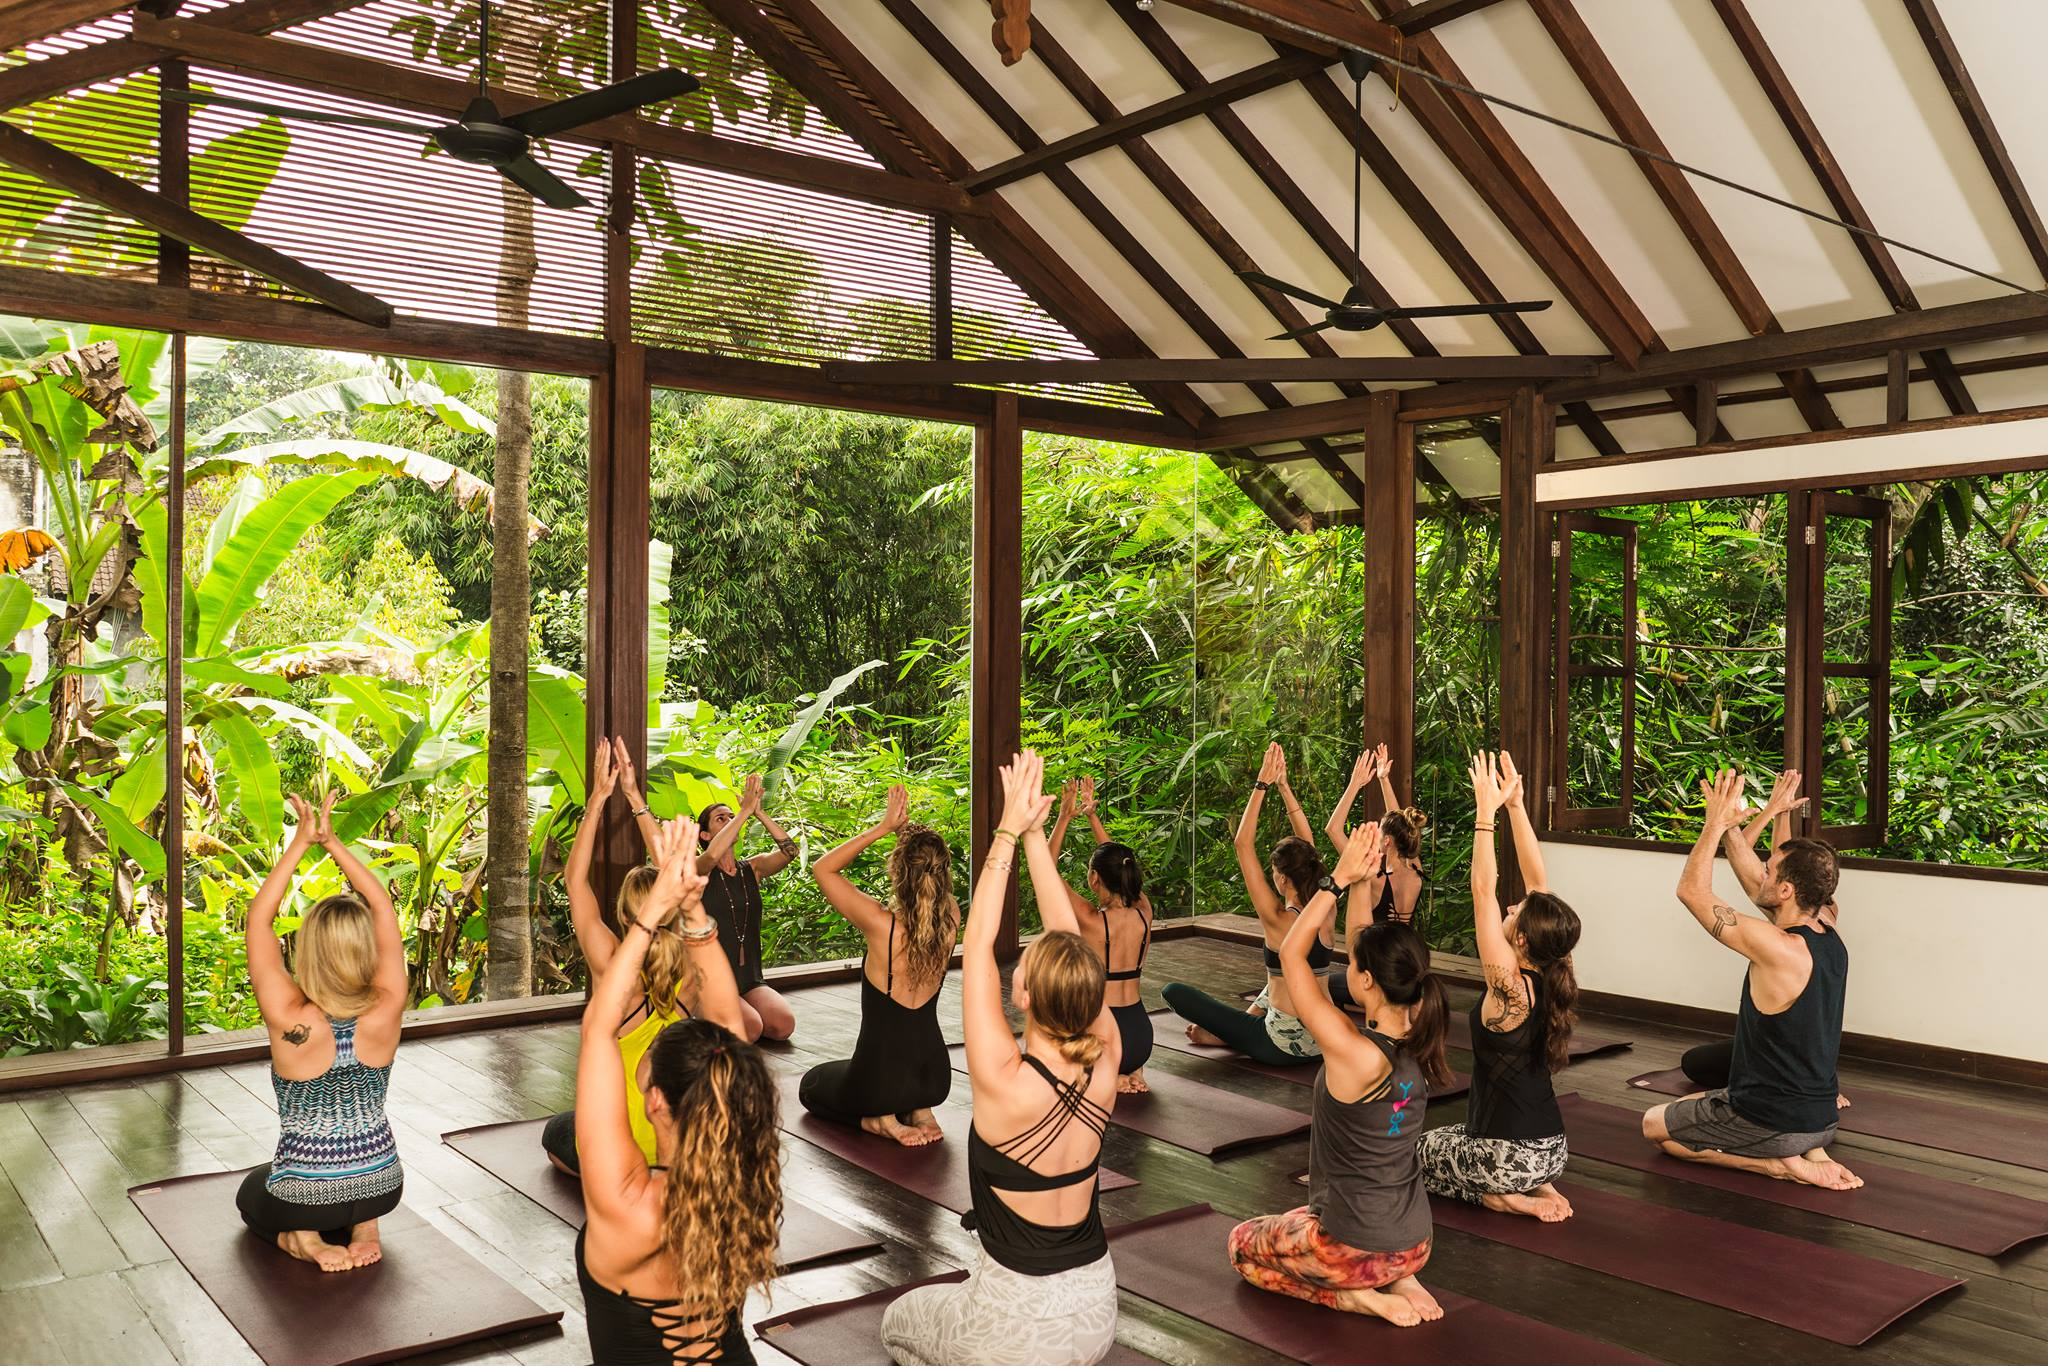 200 Hour Yoga Teacher Training in Bali - Bali Yoga School